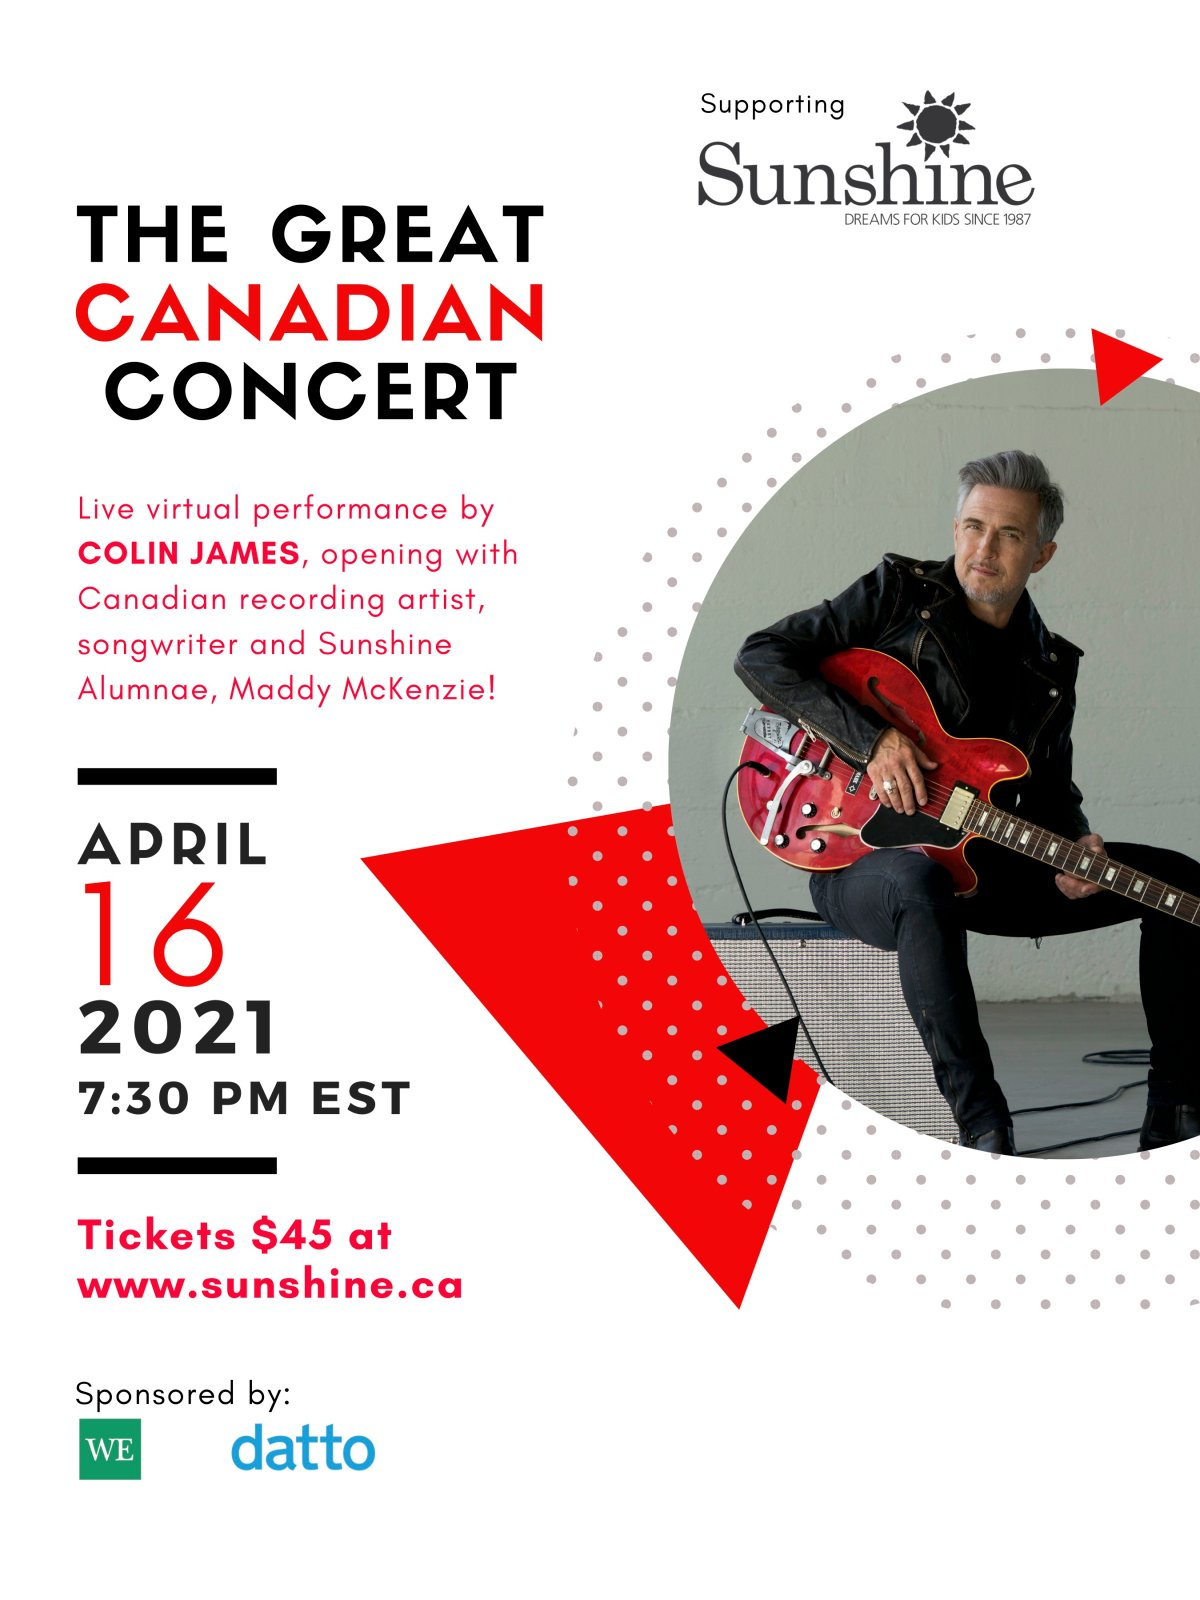 The Great Canadian Concert - image